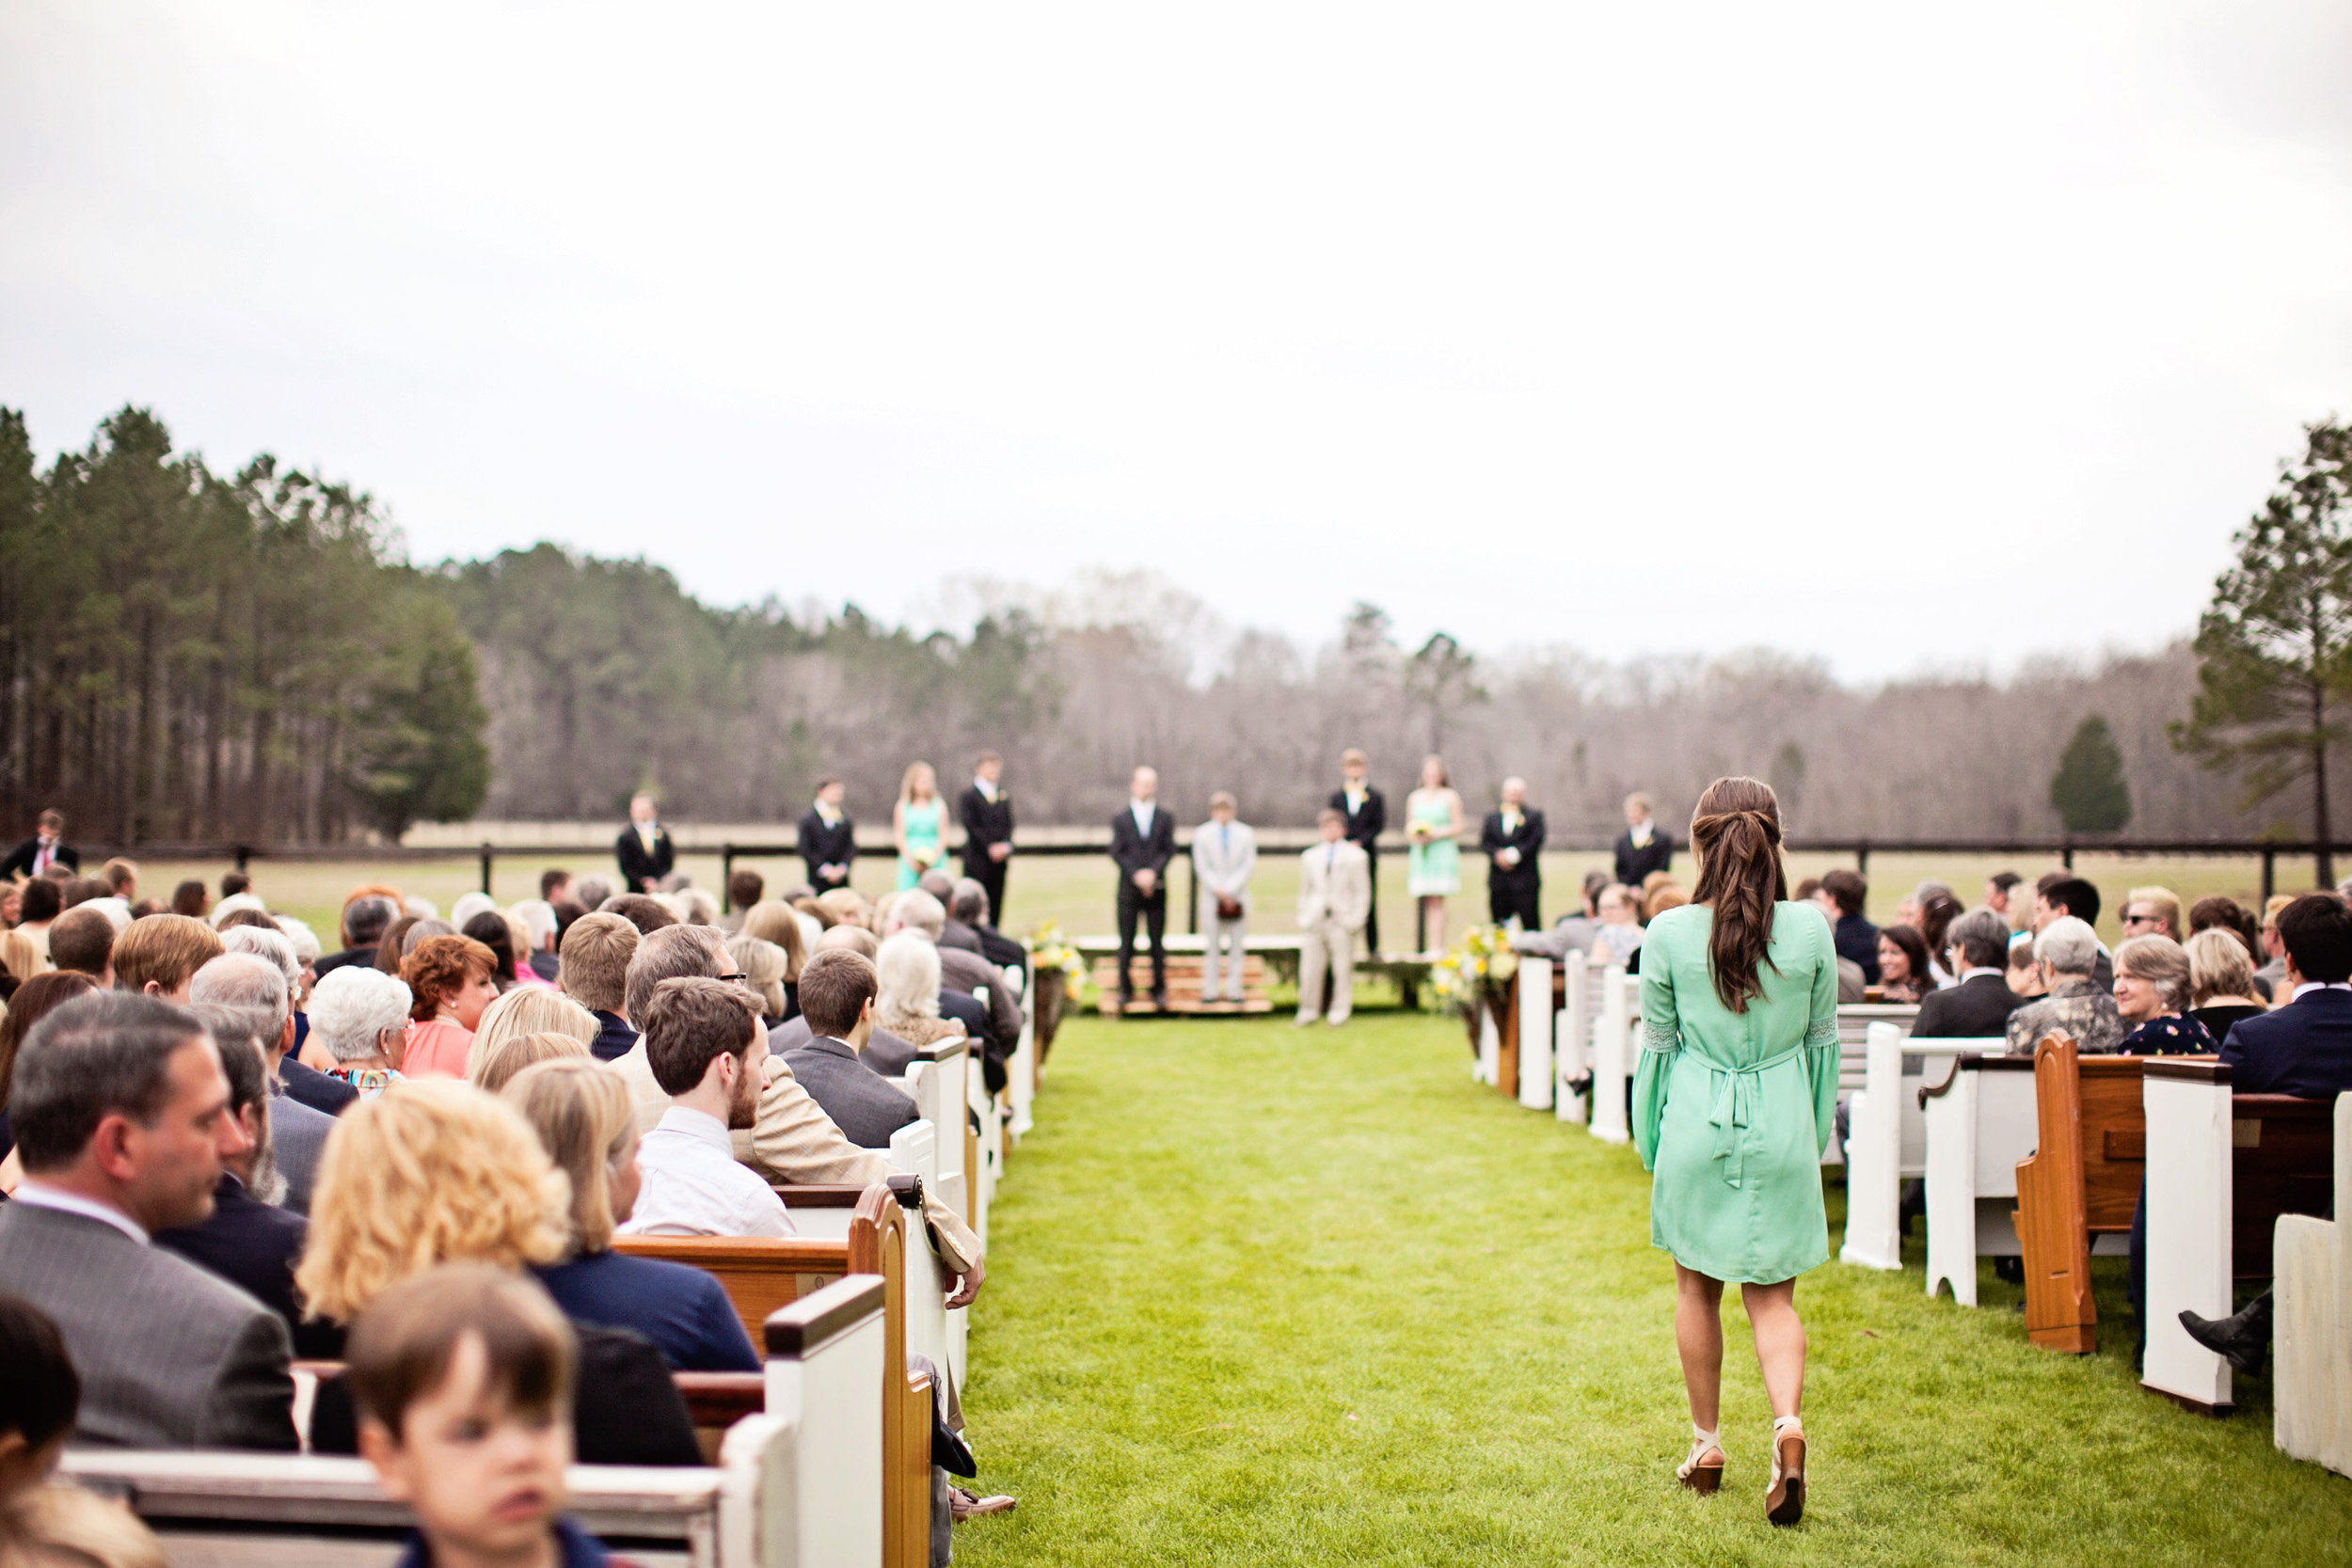 Alabama outdoor wedding with church pews. P.E.W.S. www.rentpews.com  Photography: Cameron Freshwater www.cwfphotography.org